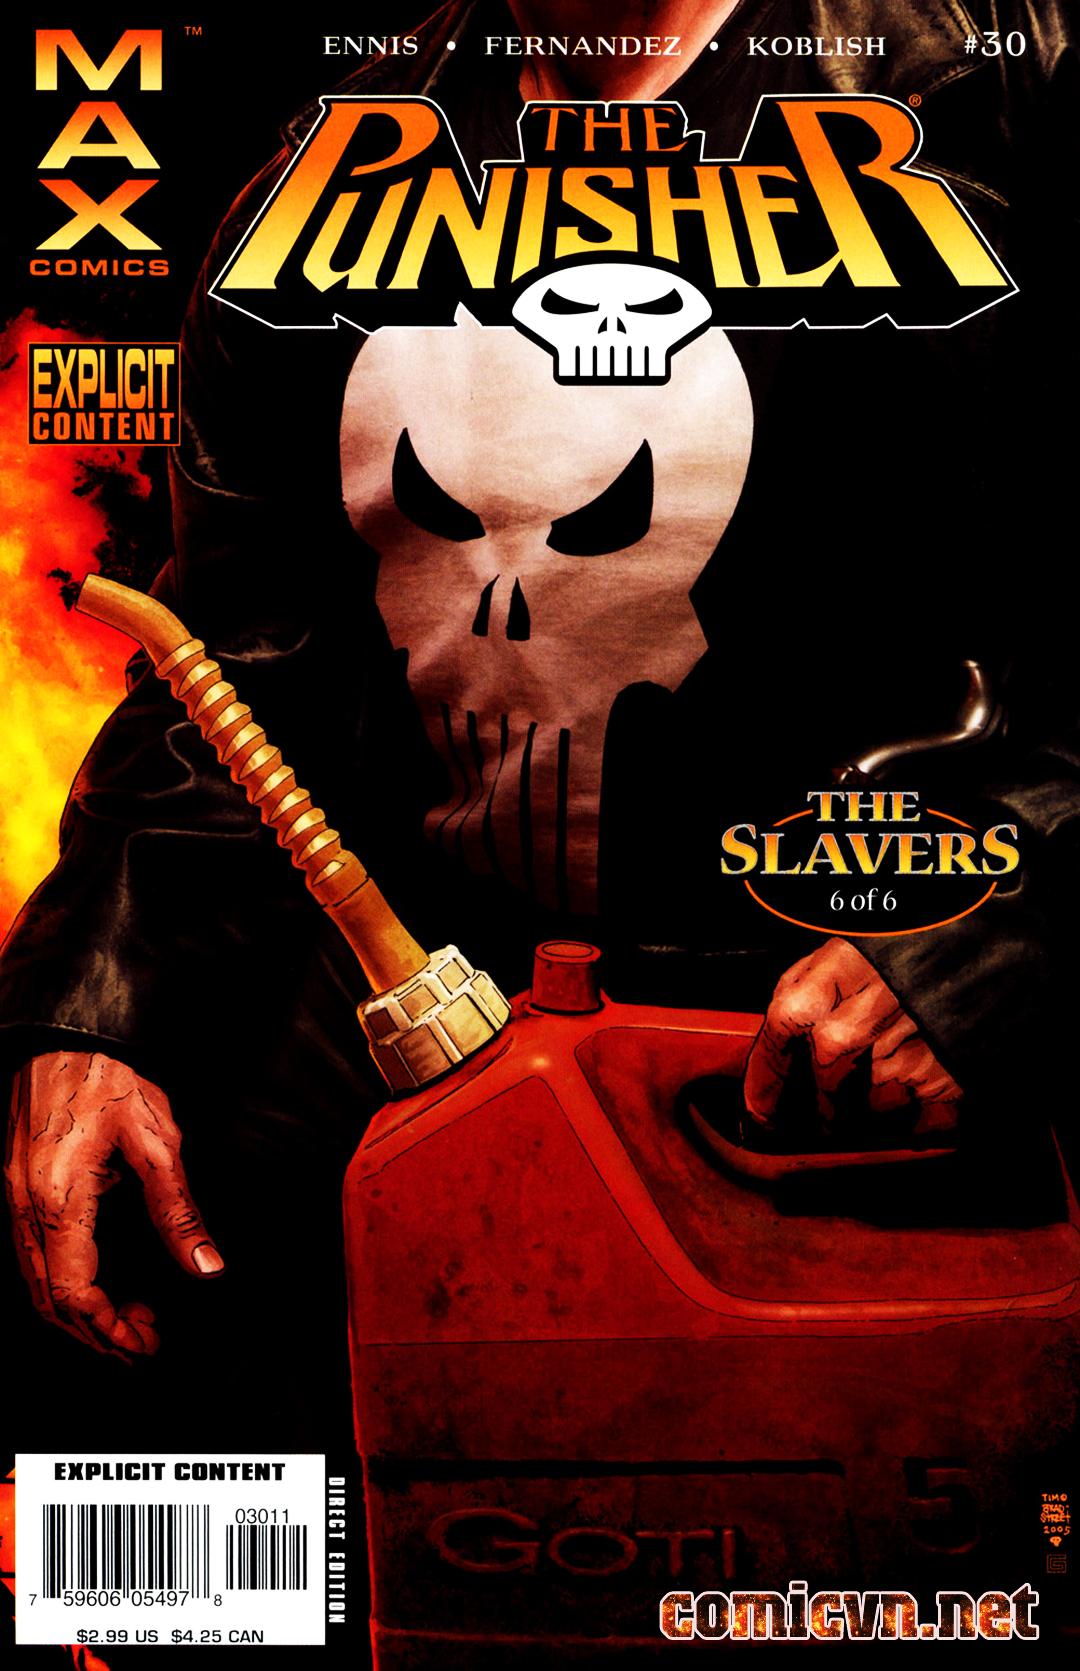 The Punisher: The Slavers: Chapter 6